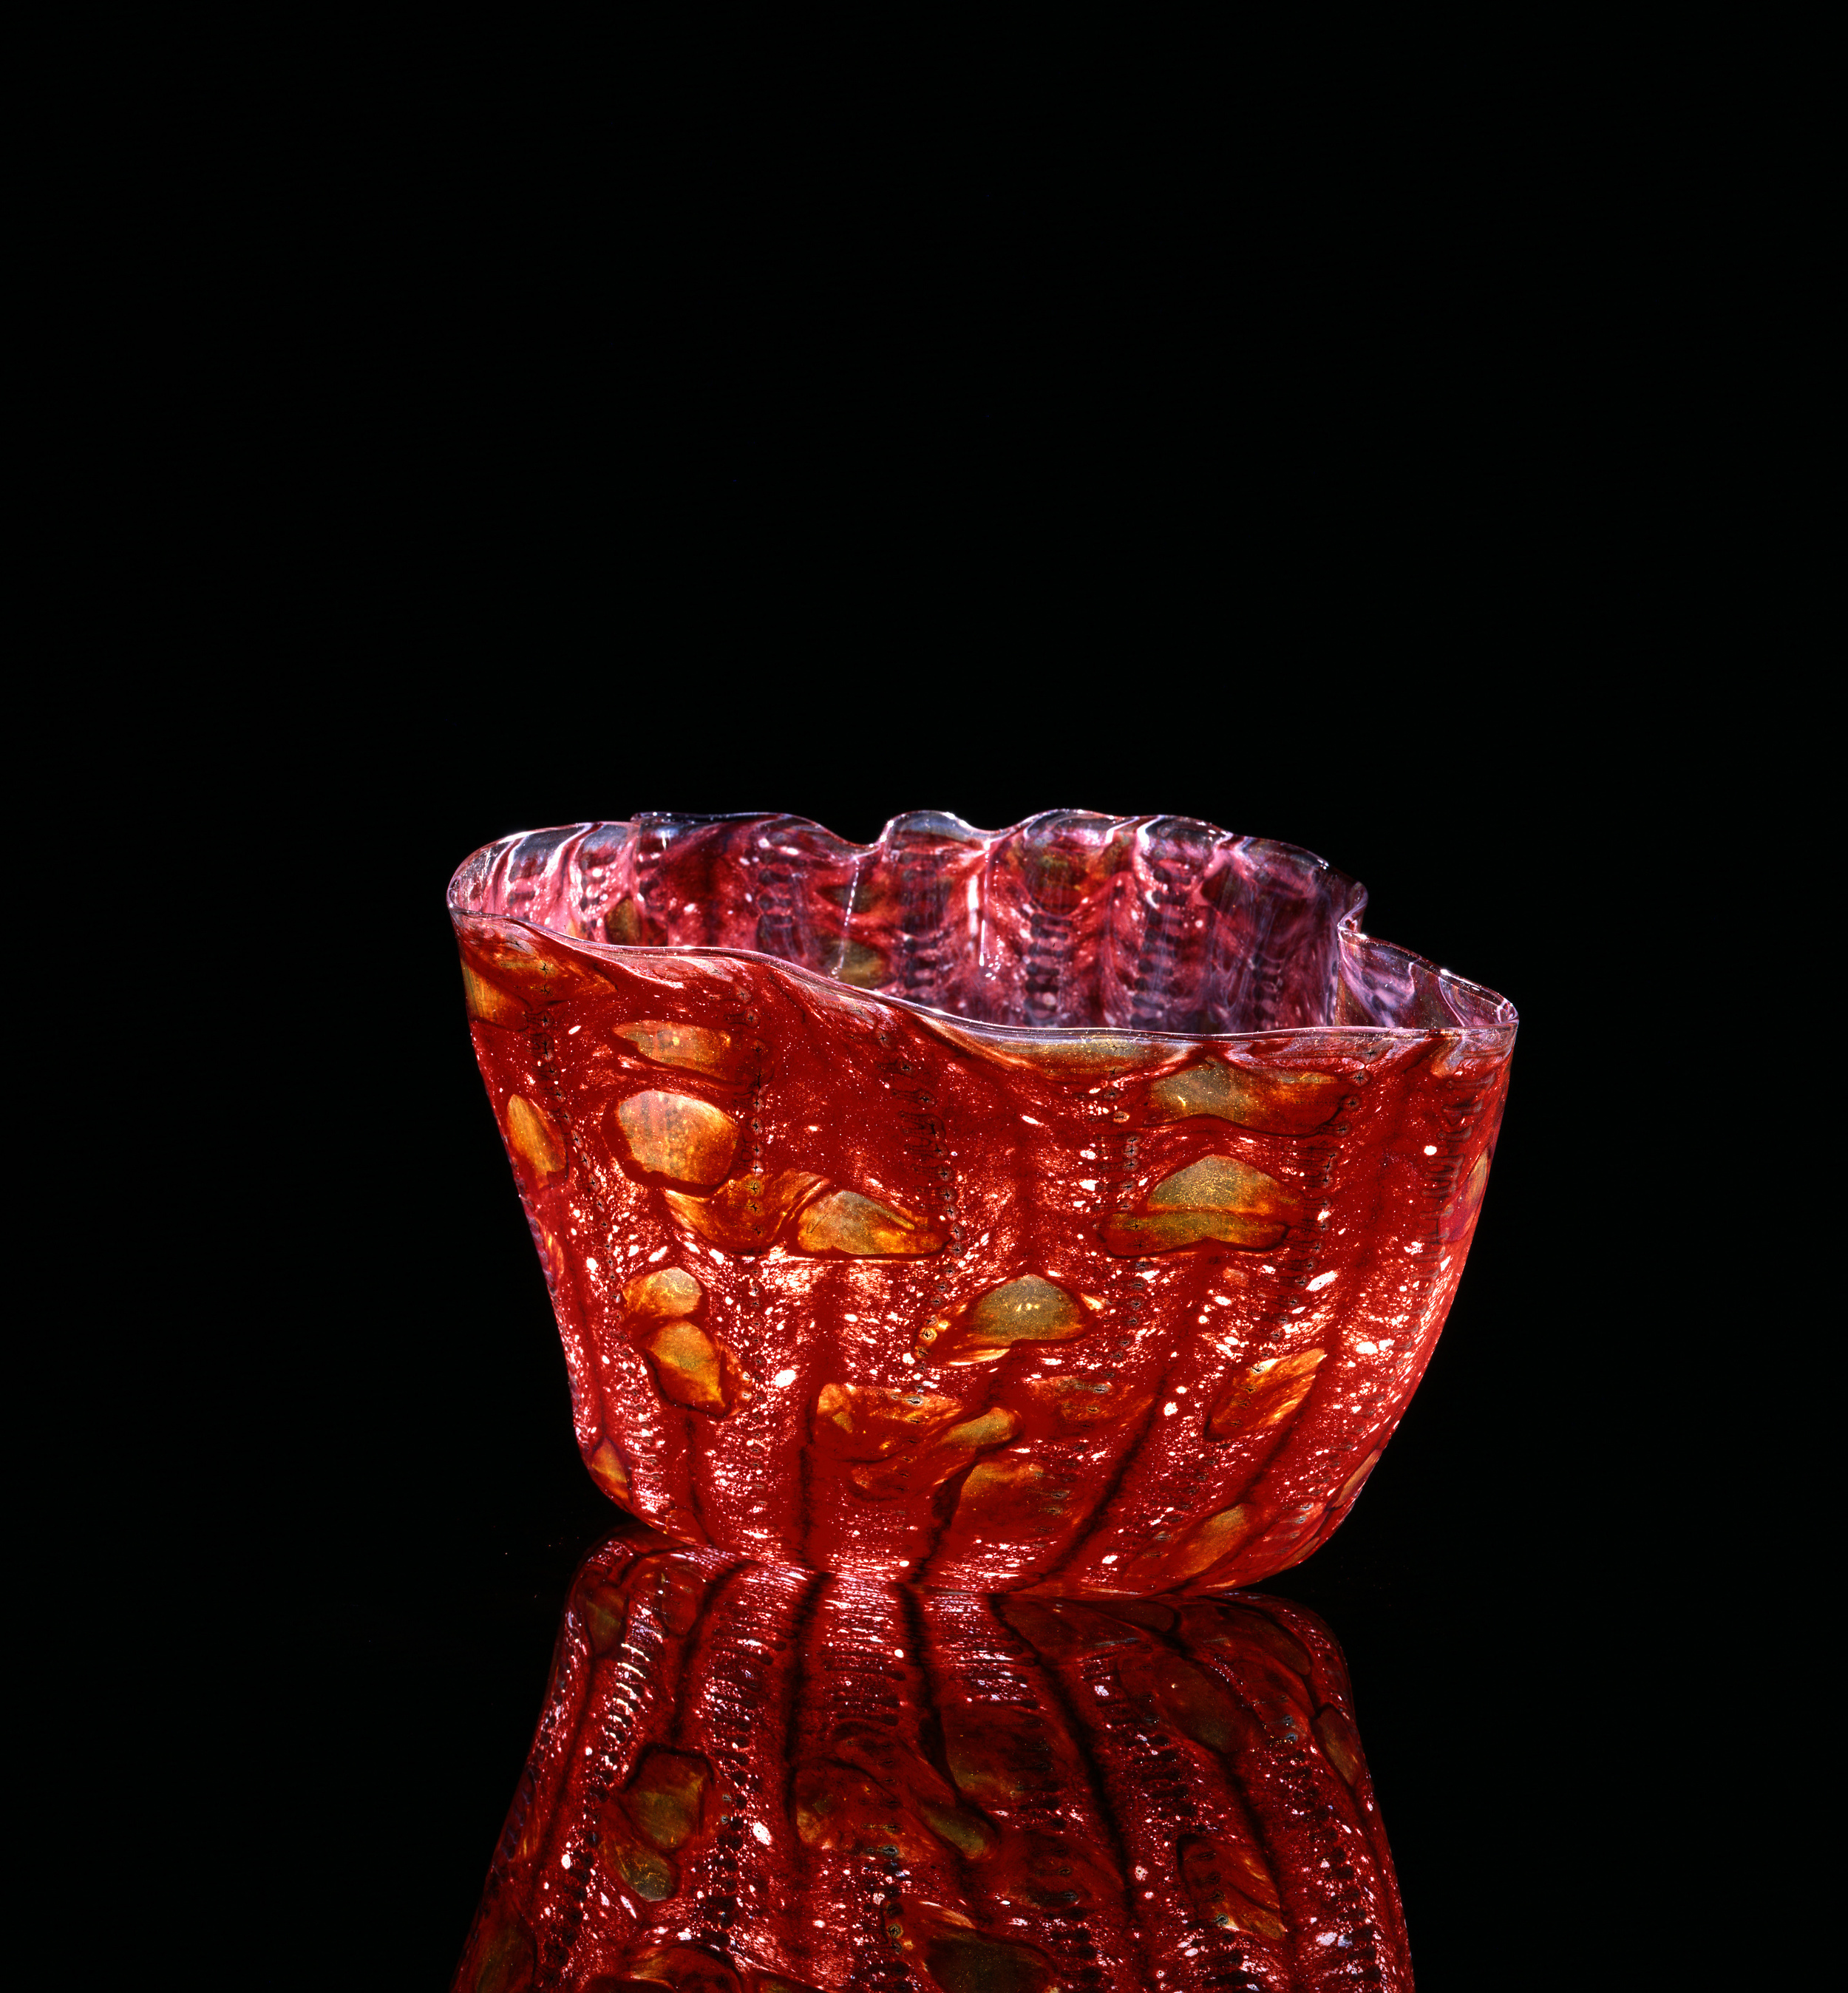 Dale Chihuly,  Prometheus Red Macchia with Sienna Jimmies   (1982, glass, 8 x 9 x 8inches), DC.112